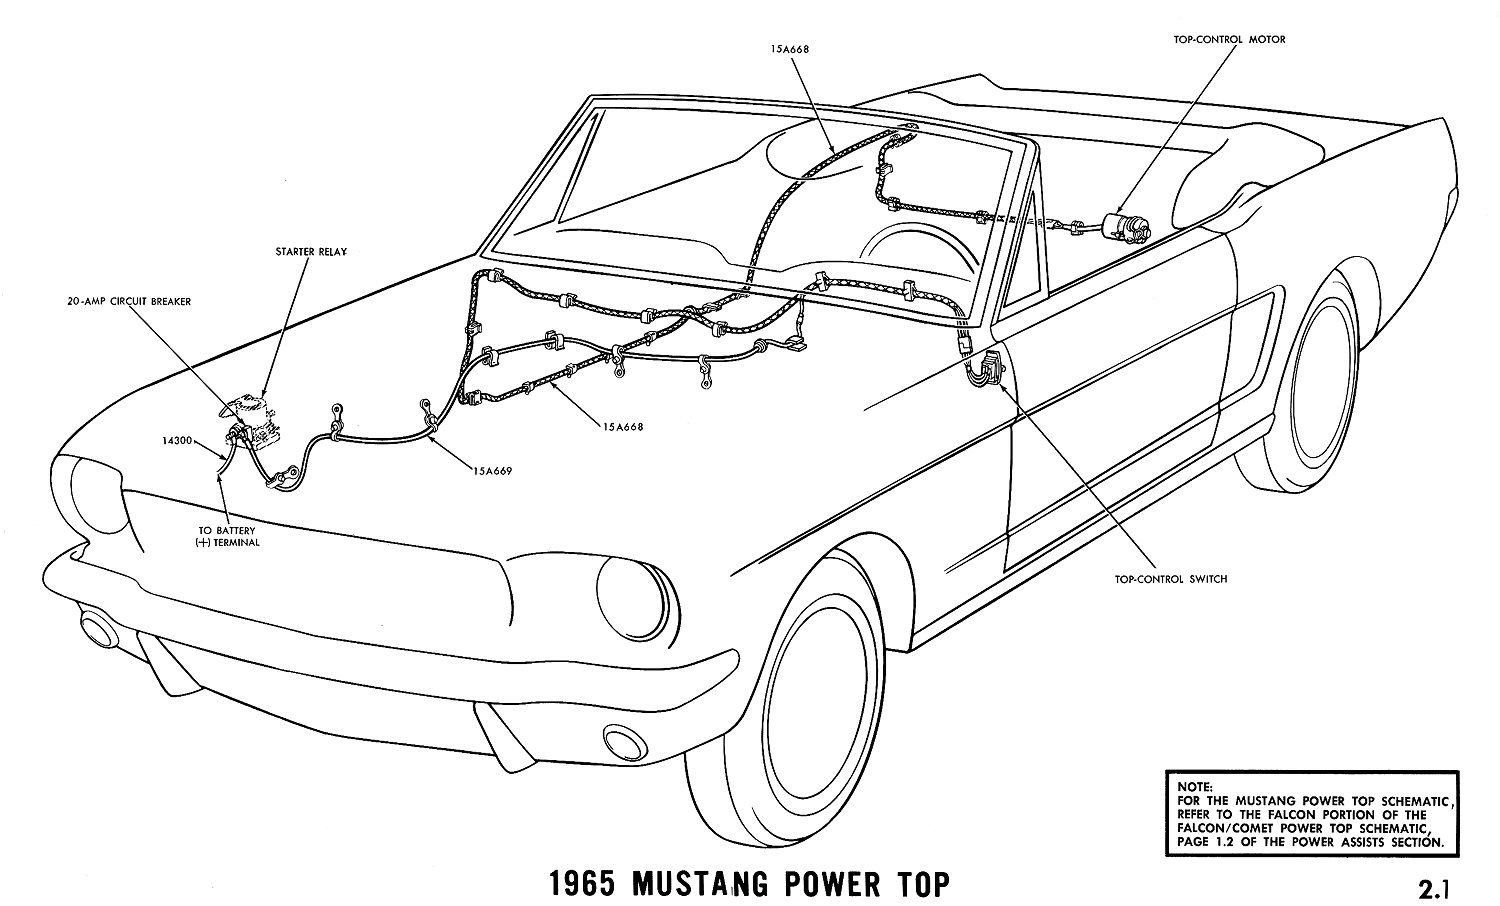 1965j 1965 mustang wiring diagrams average joe restoration 1967 Mustang Wiring Schematic at alyssarenee.co